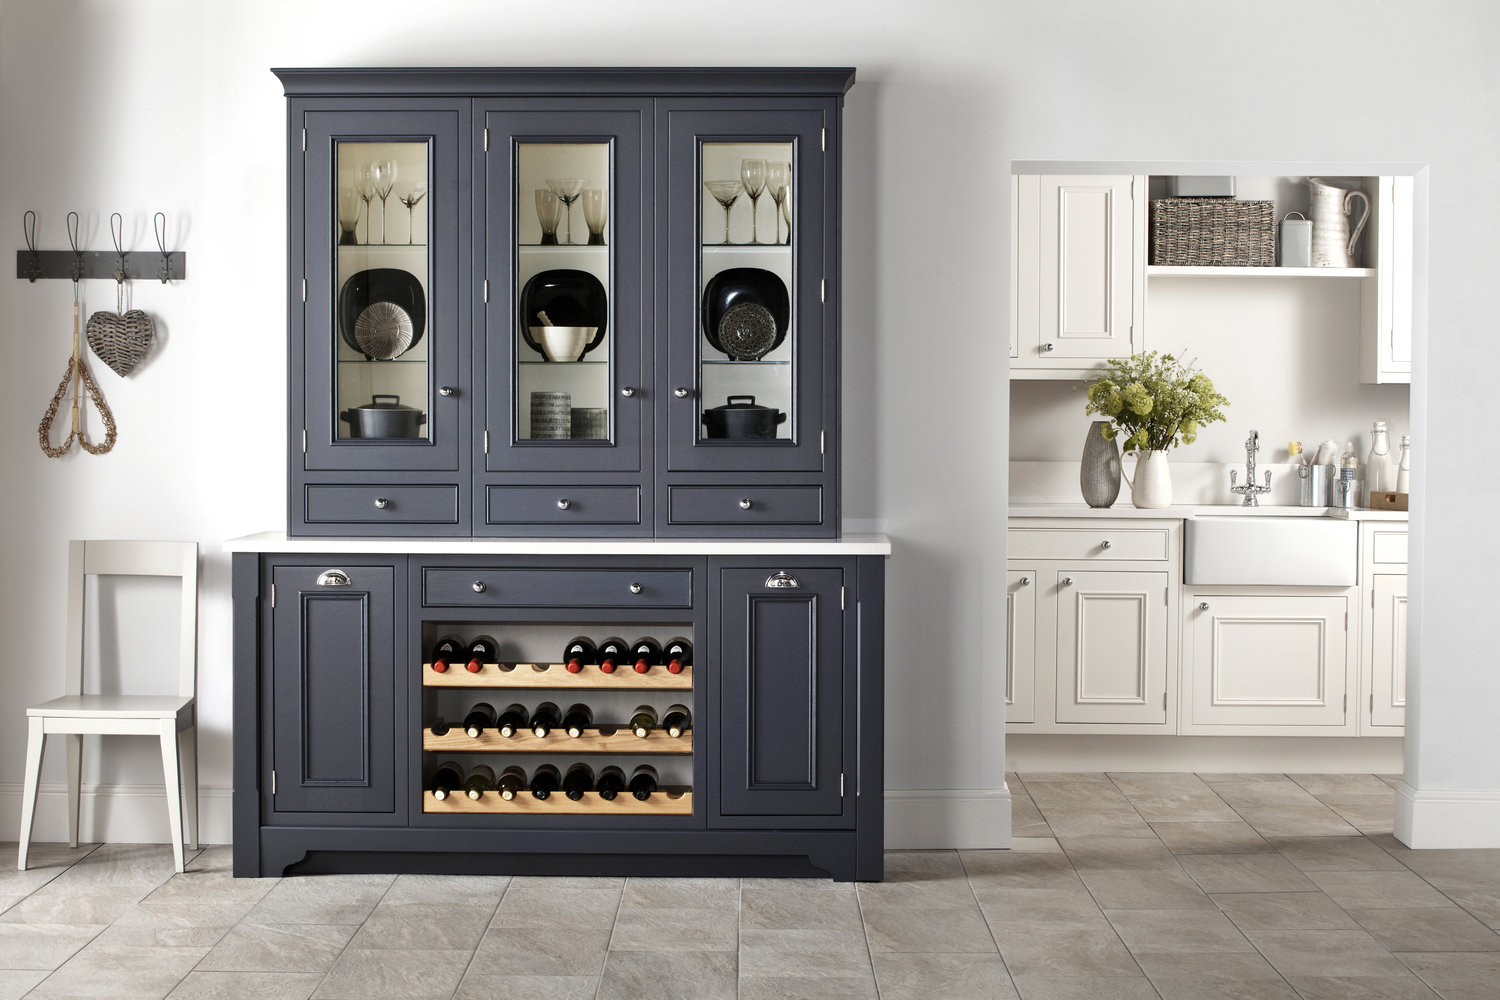 consider choosing units in two contrasting paint finishes for stunning visual effect.